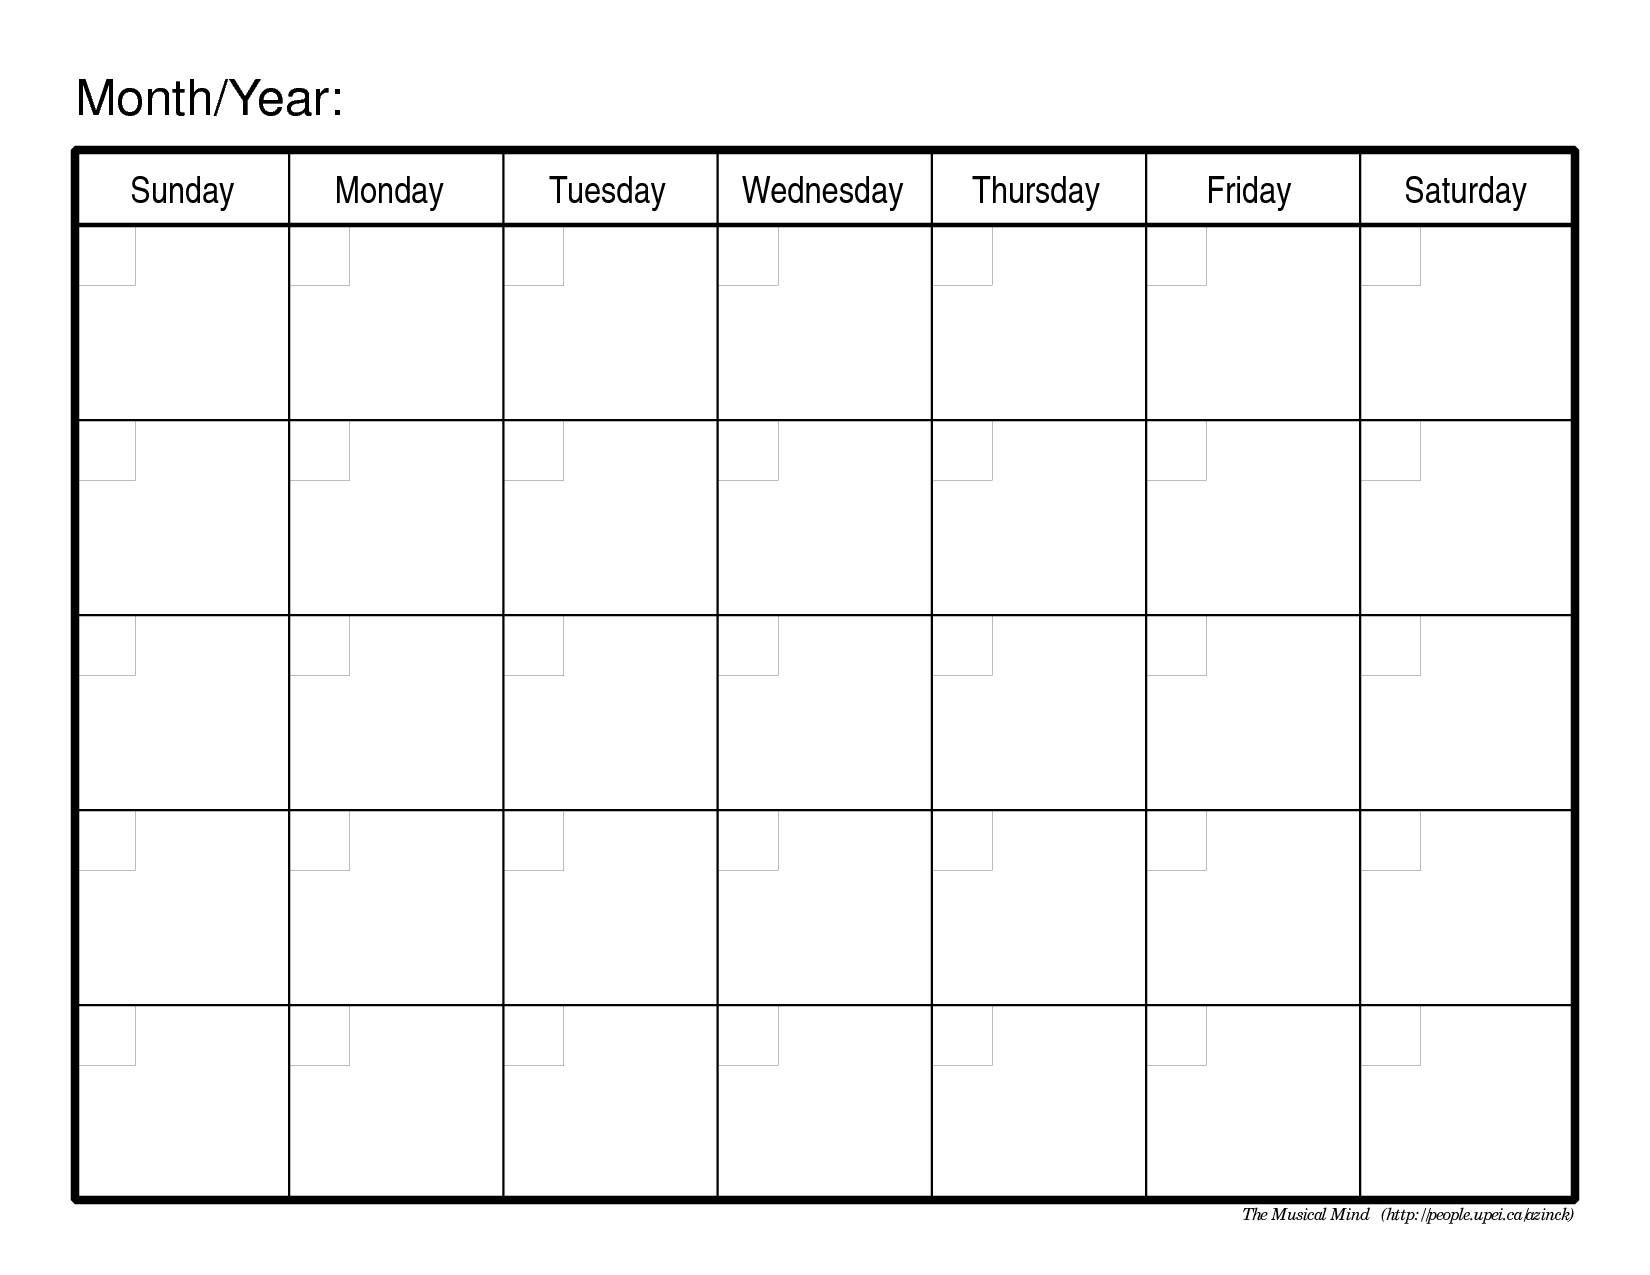 Free Printable Monthly Calendar : Http calendartemplateku monthly calendar free